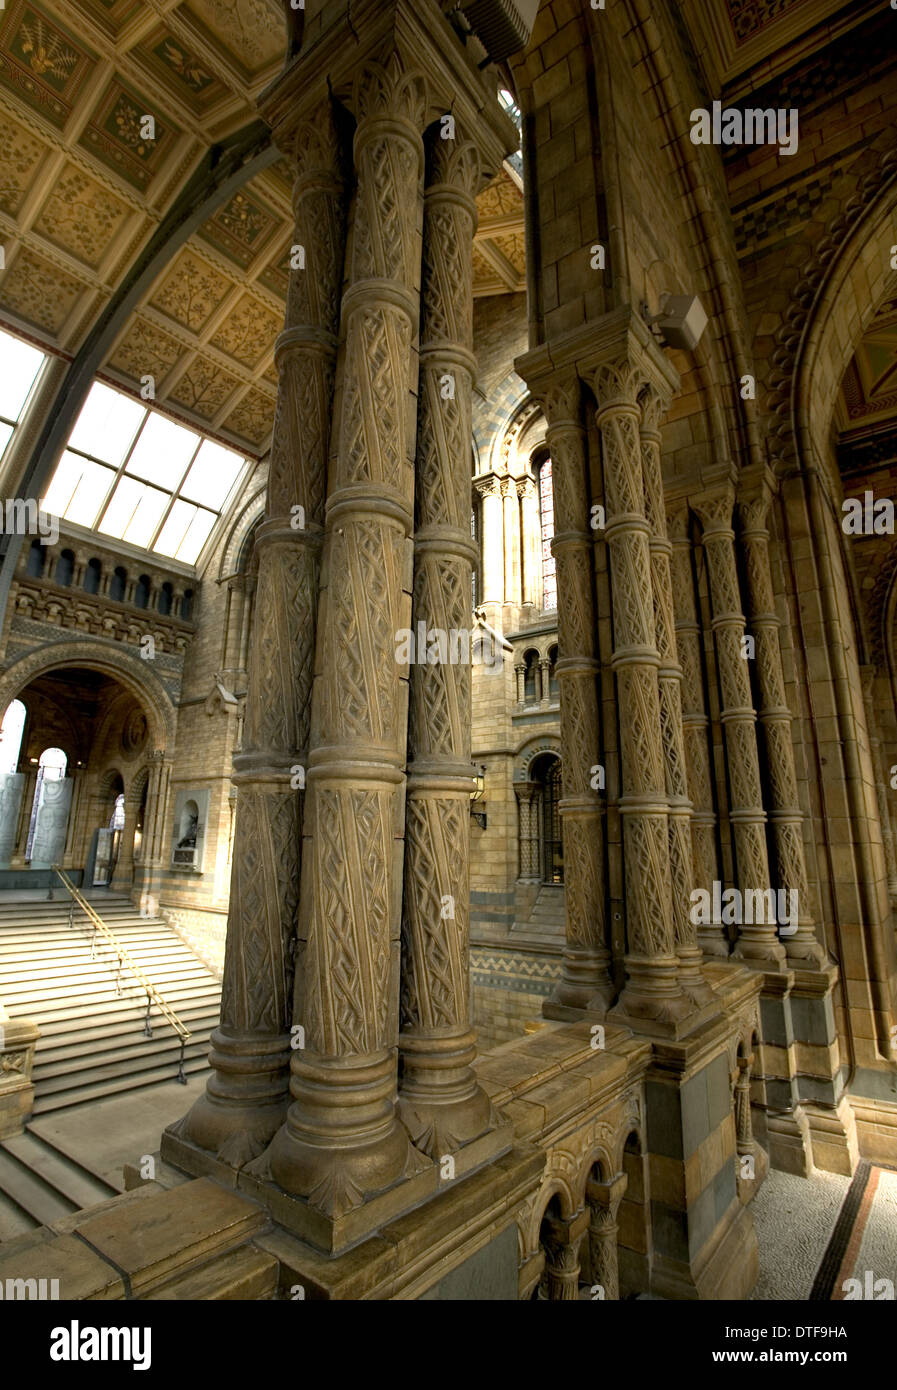 Architectural features of the Main Hall - Stock Image